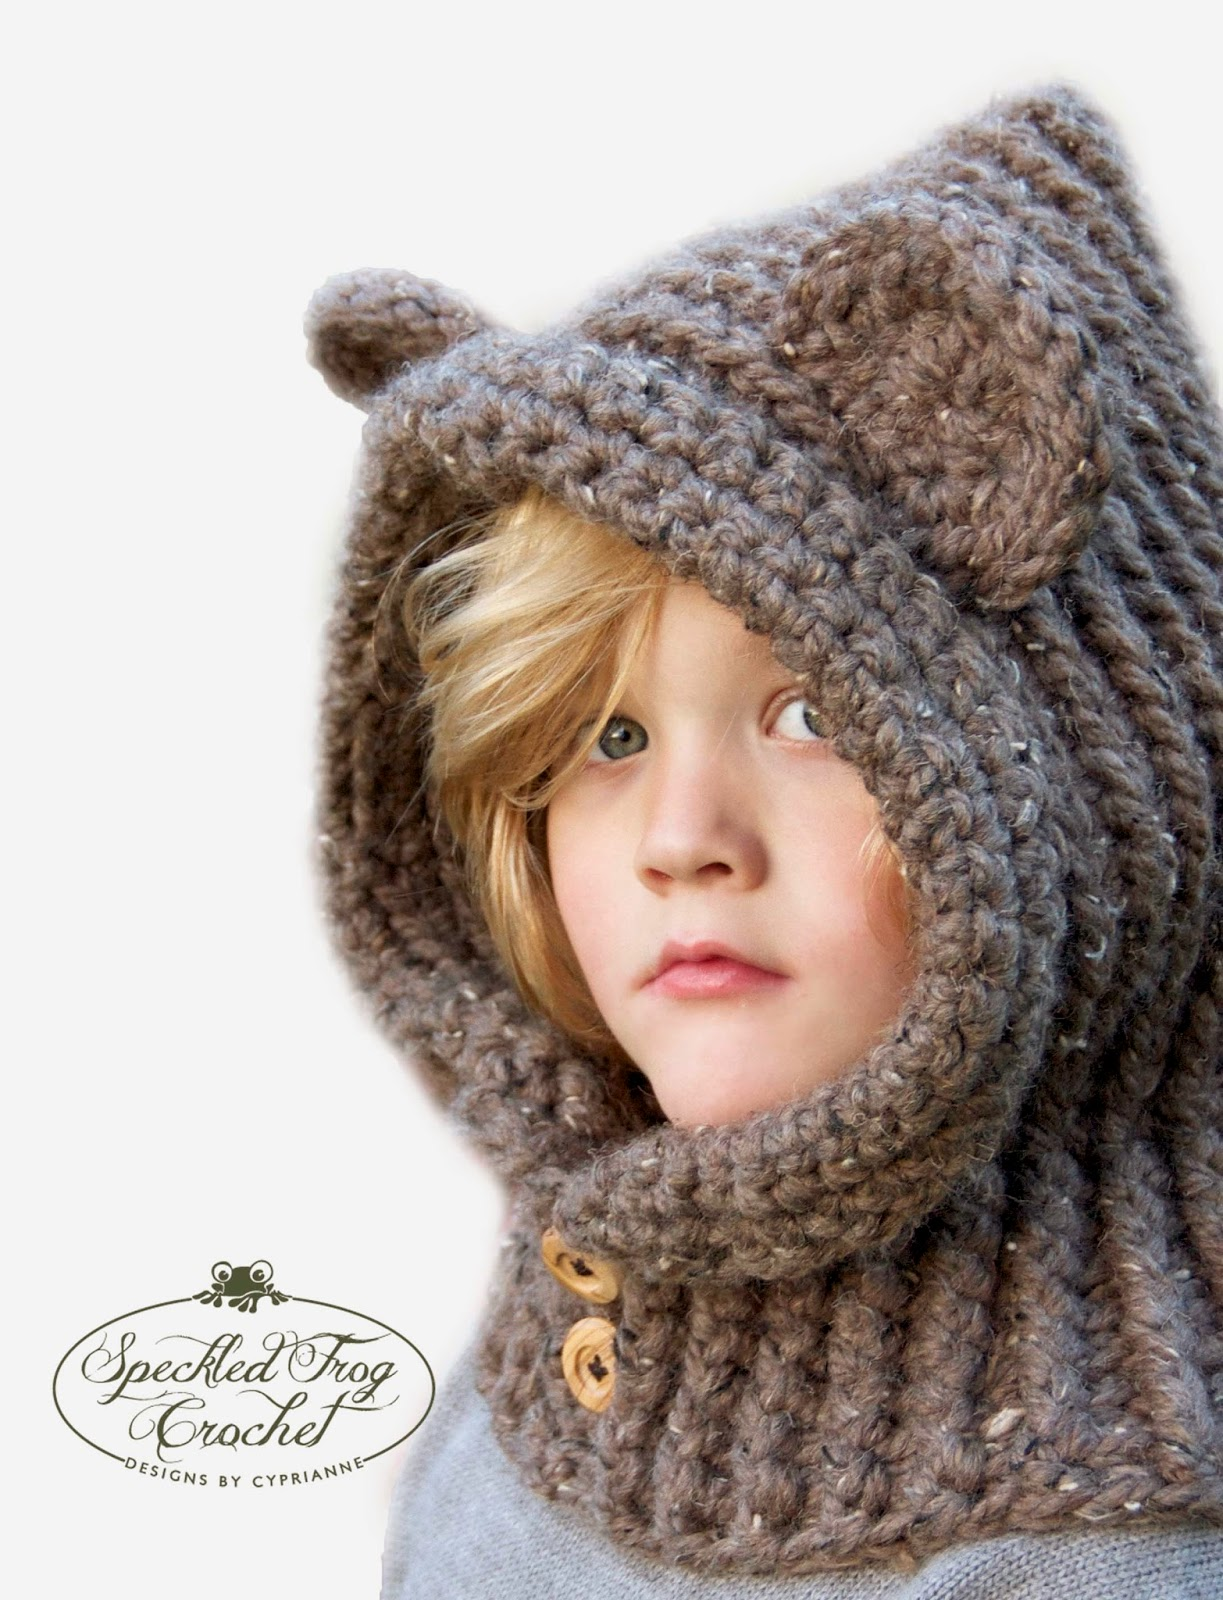 Hooded Cowl Knit Pattern : CROCHET HOODED BEAR COWL PATTERN